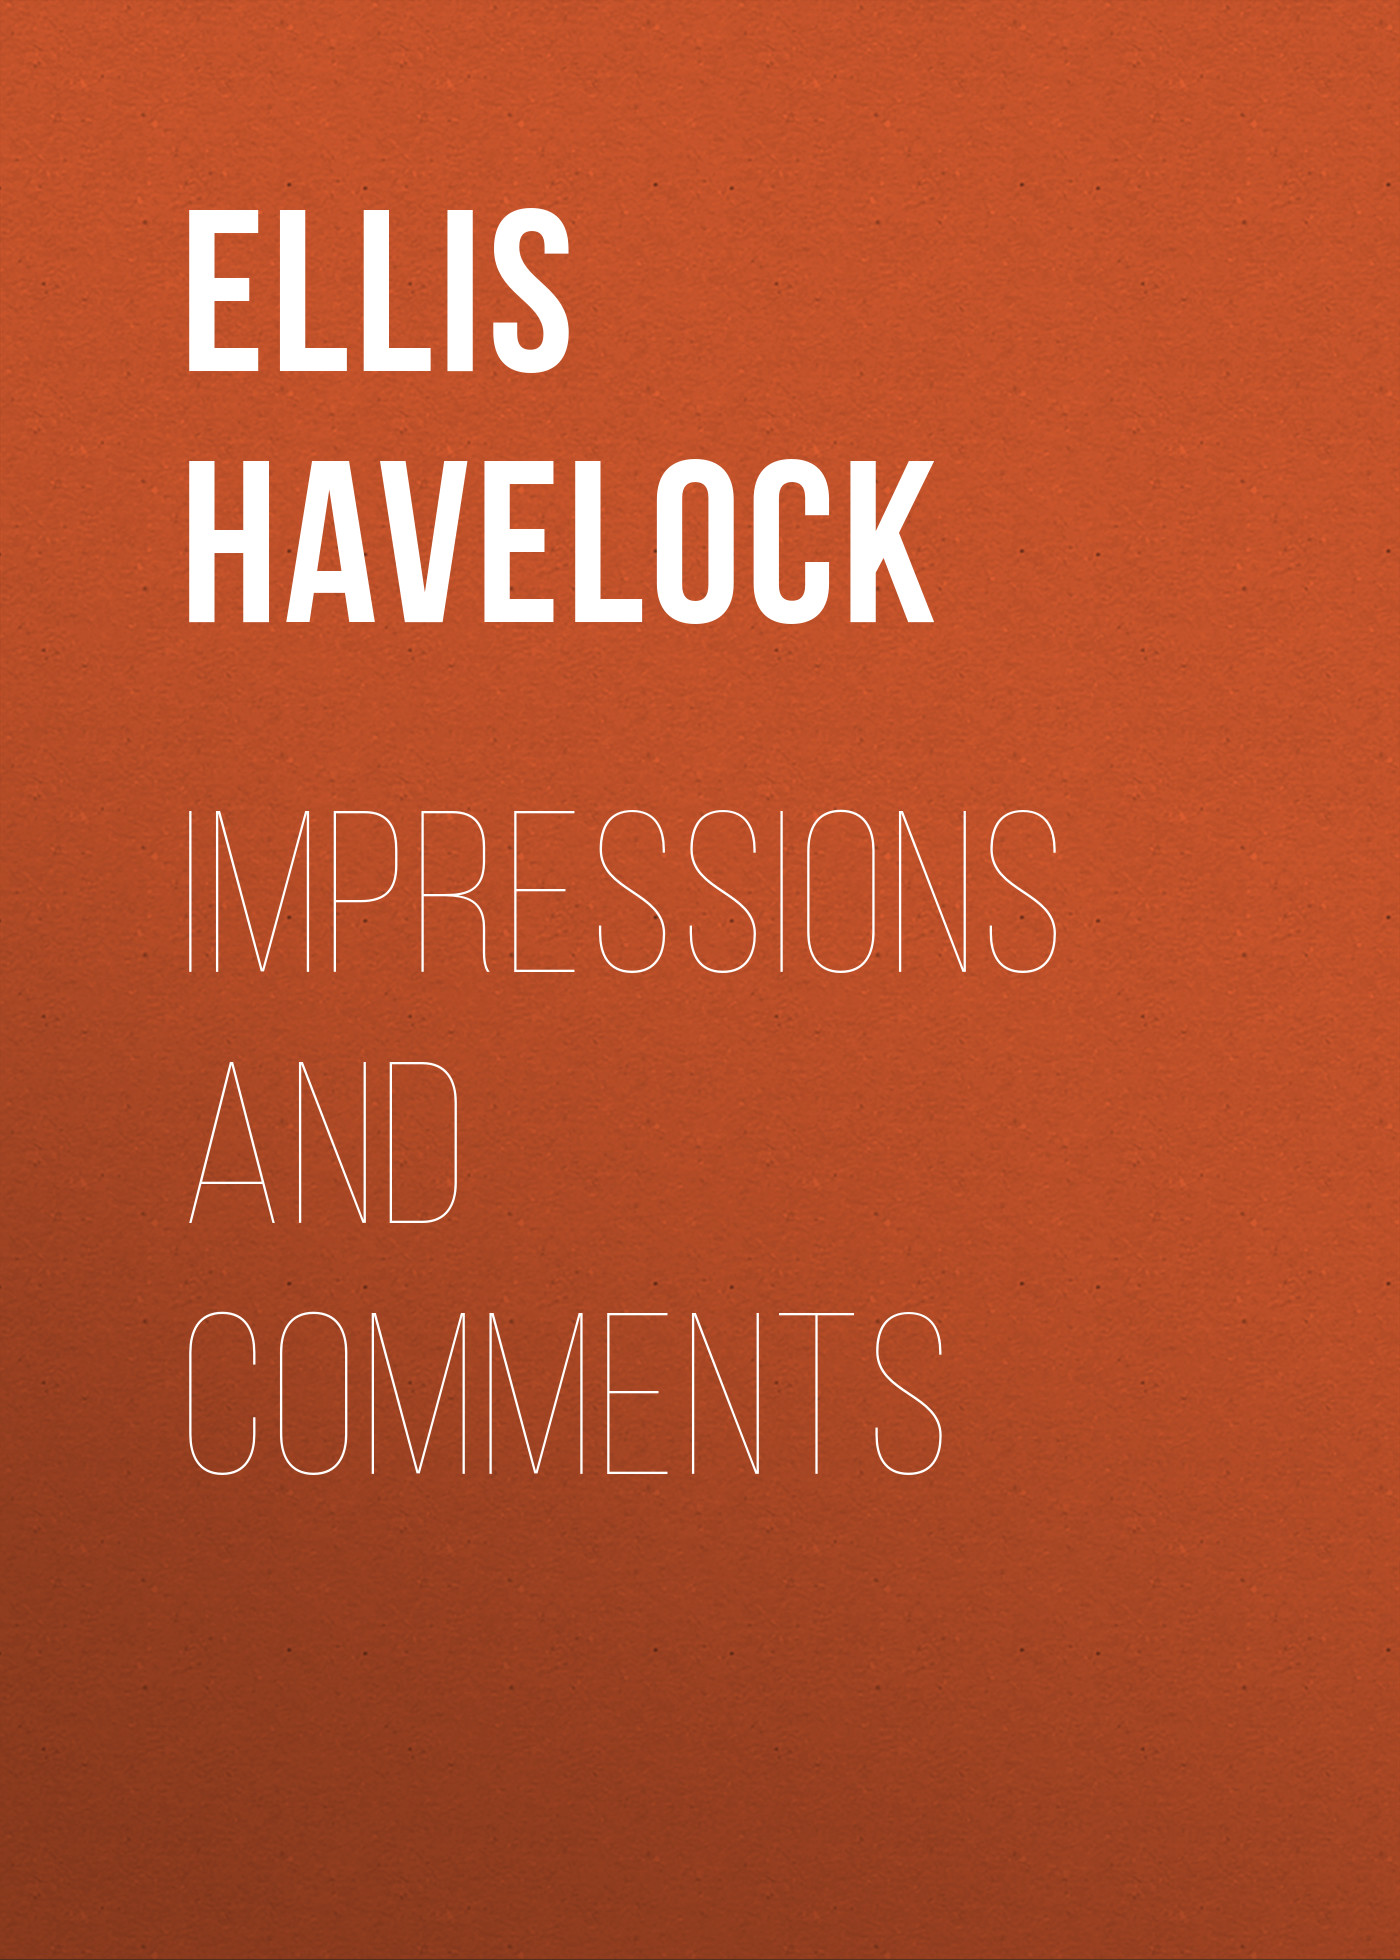 Ellis Havelock Impressions and Comments